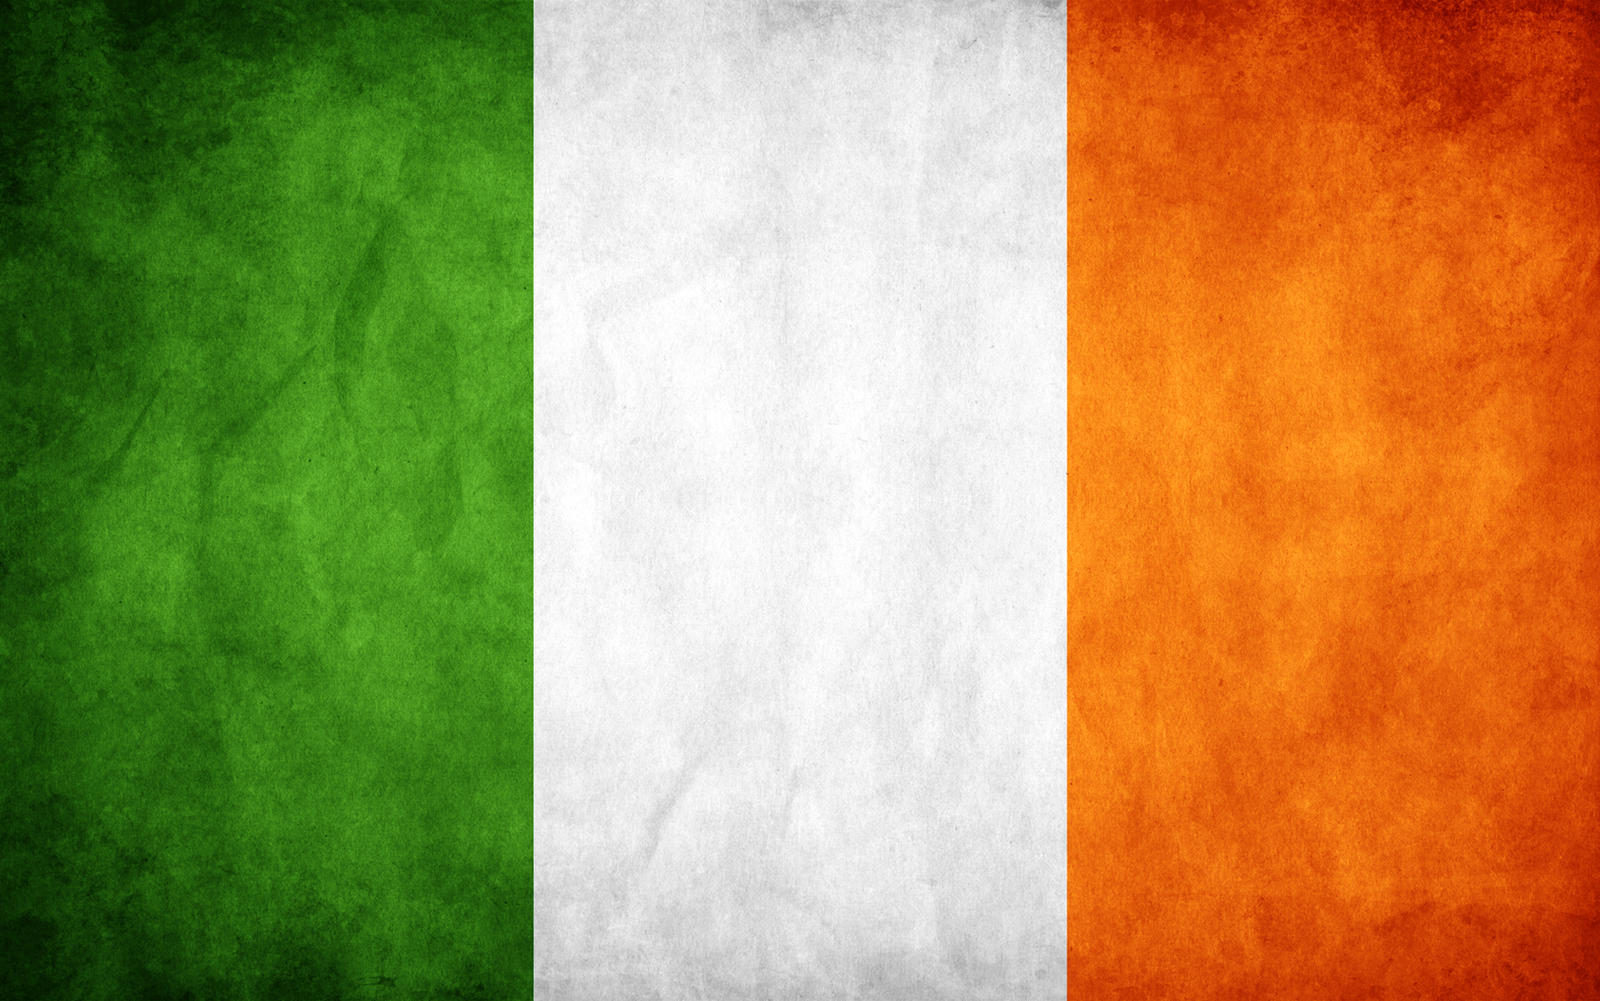 Ireland Grunge Flag by think0